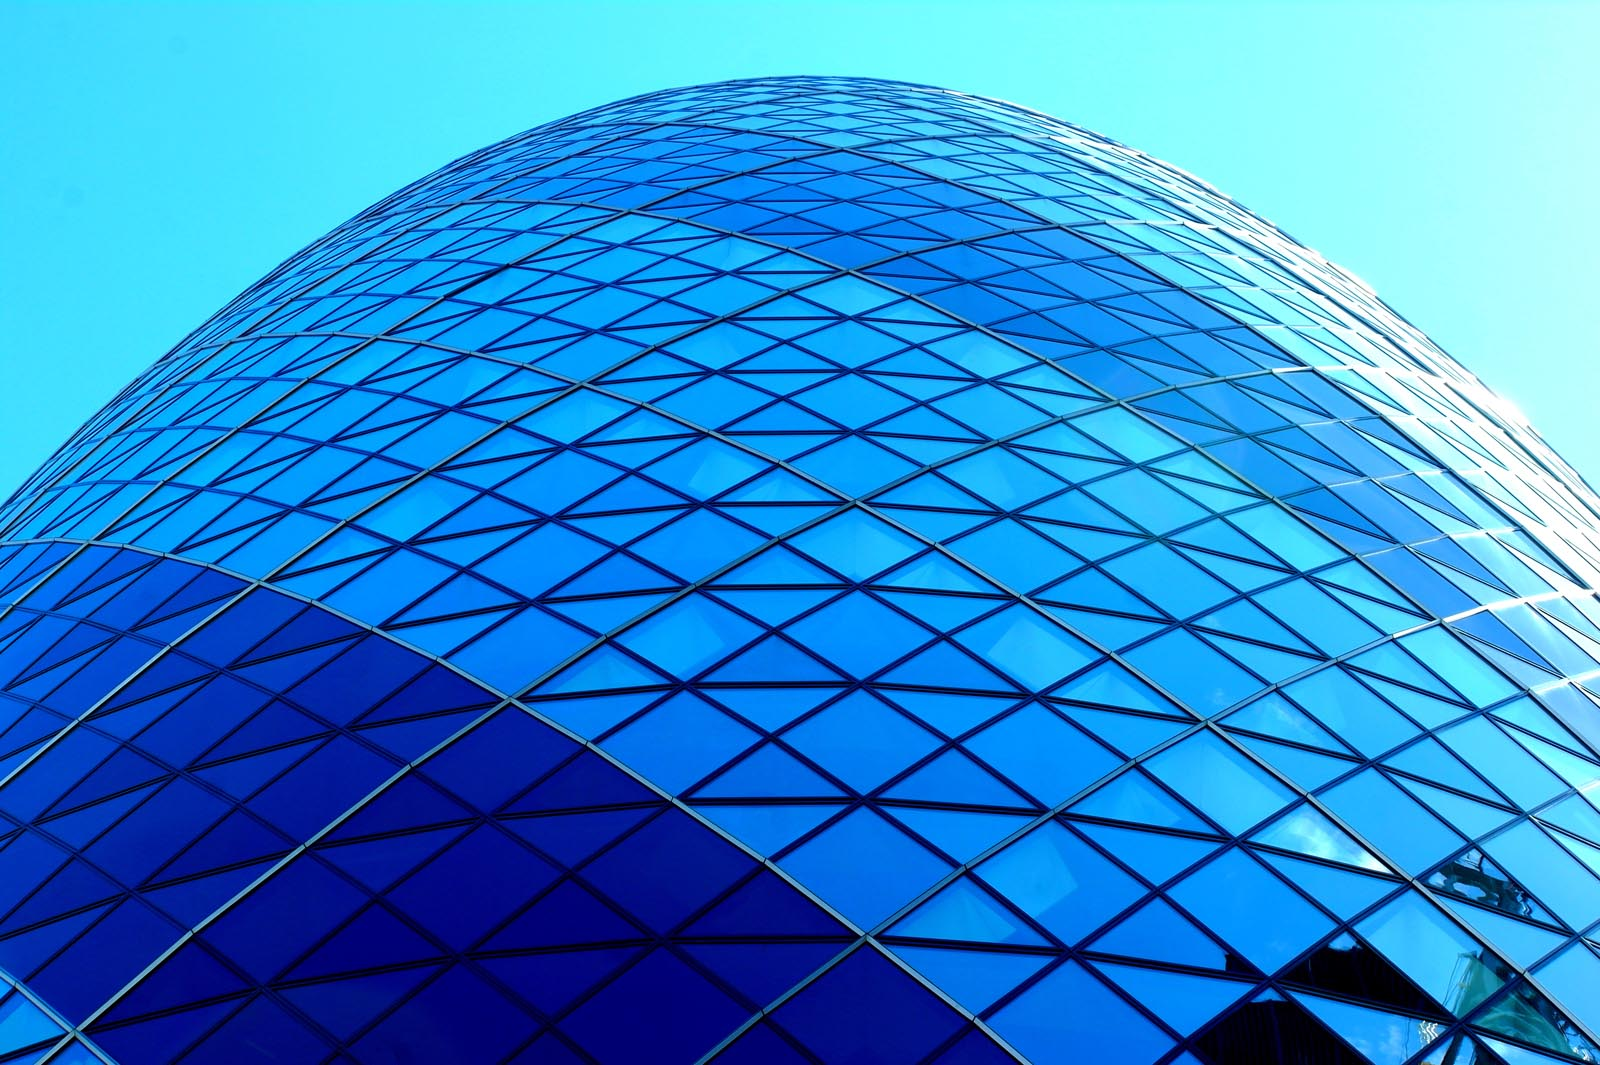 The Gherkin, 30 St Mary Axe